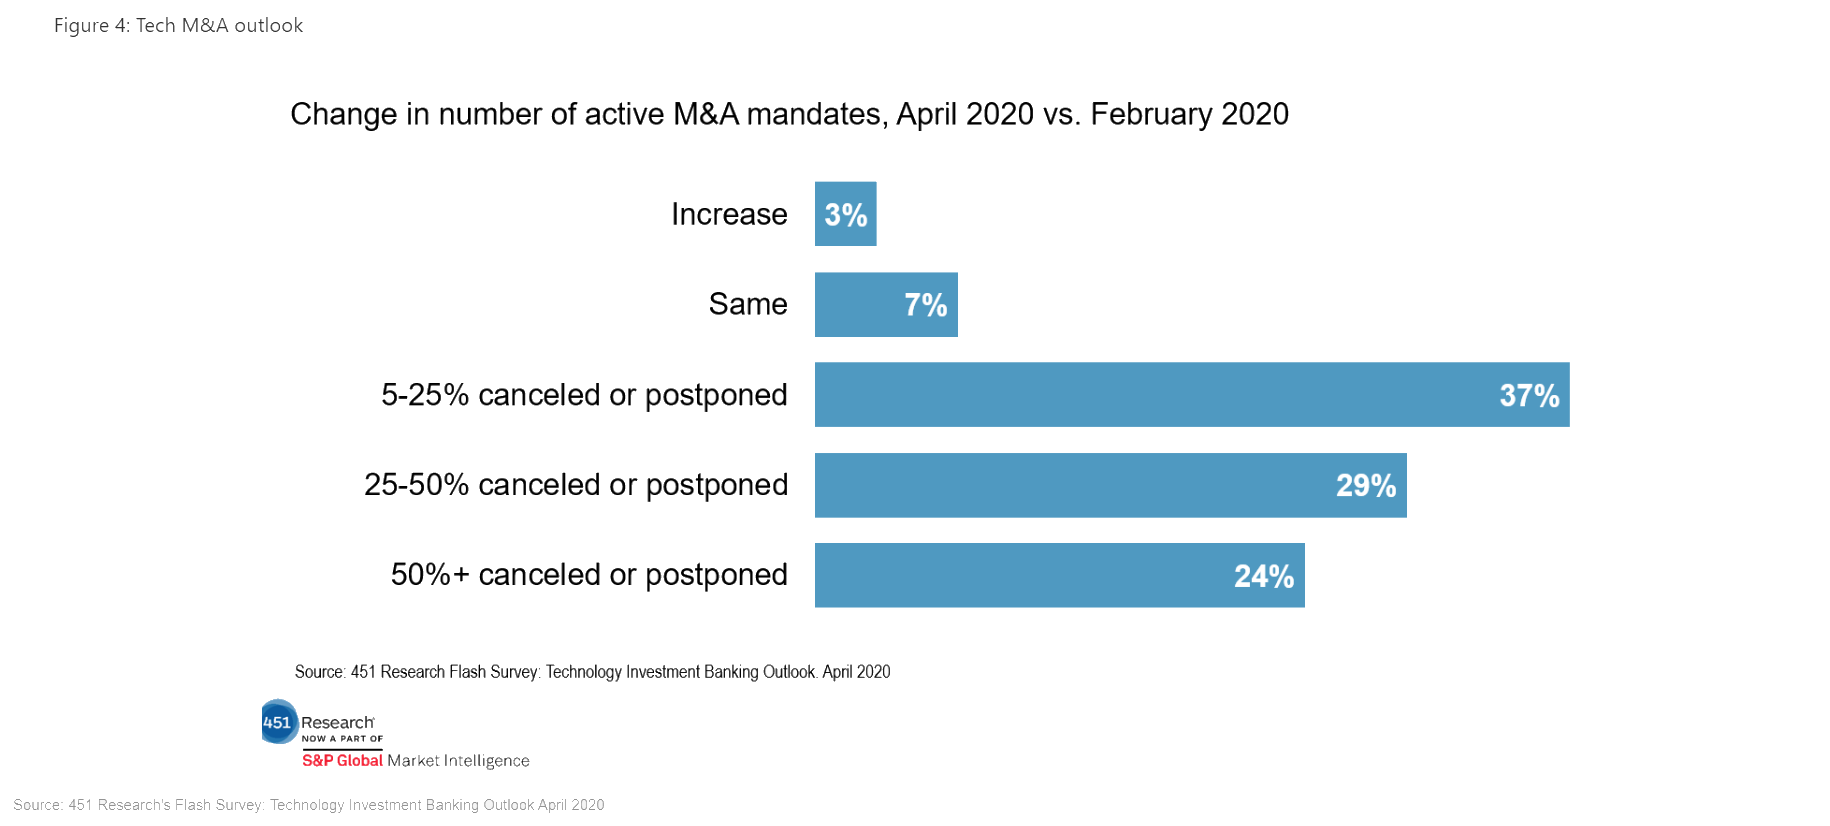 Change In Number Of Active M&A Mandates